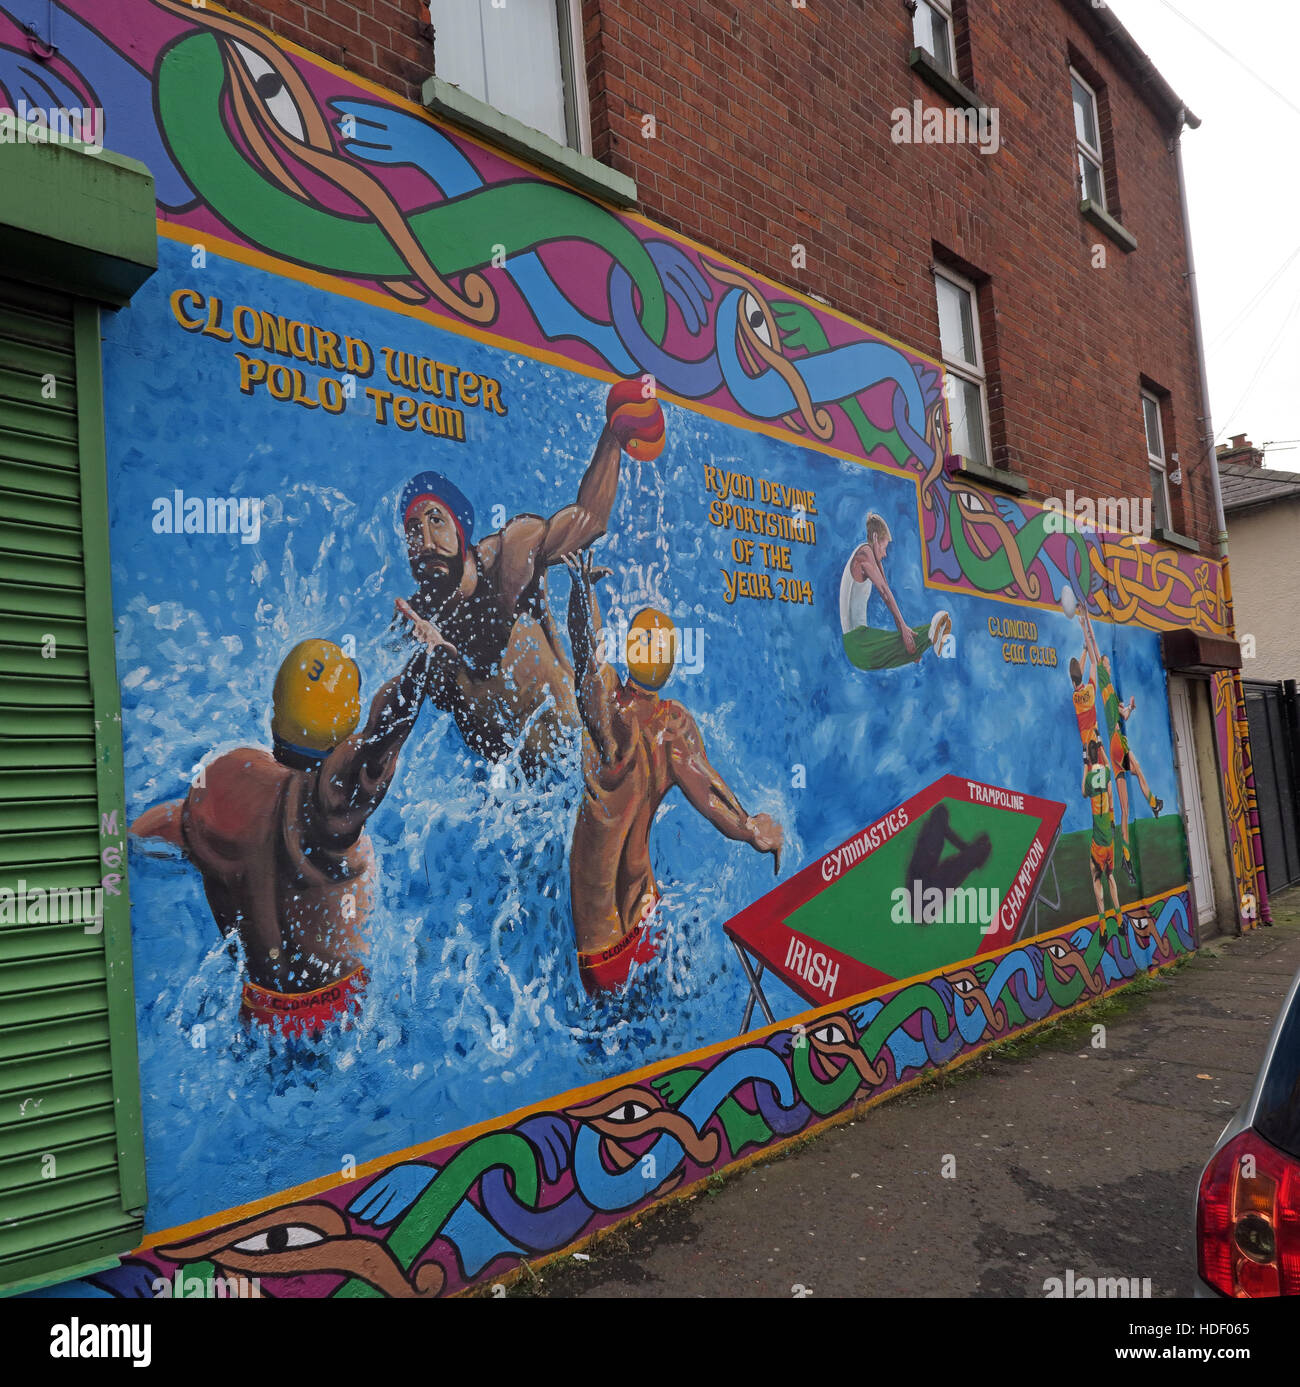 Road,painting,graffiti,resistance,IRA,peace,Northern Ireland,NI,UK,St,street,Eire,Irish,Republic,Irish Republic,conflict,Irish Republican Army,Political Change,gable,end,gable end,Irish,Sport,Clonard Water Polo Team,Clonard,Water Polo,Team,GoTonySmith,@HotpixUK,Tony,Smith,UK,GB,Great,Britain,United,Kingdom,Irish,British,Ireland,problem,with,problem with,issue with,NI,Northern,Northern Ireland,Belfast,City,Centre,Art,Artists,the,troubles,The Troubles,Good Friday Agreement,Peace,honour,painting,wall,walls,tribute,republicanism,Fight,Justice,West,Beal,feirste,martyrs,social,tour,tourism,tourists,urban,six,counties,6,backdrop,county,Antrim,occupation,good,Friday,agreement,peace,reconciliation,IRA,terror,terrorists,genocide,Belfast streets,catholic,community,catholics,Buy Pictures of,Buy Images Of,Images of,Stock Images,Tony Smith,United Kingdom,Great Britain,British Isles,republican cause,Belfast Catholic Community